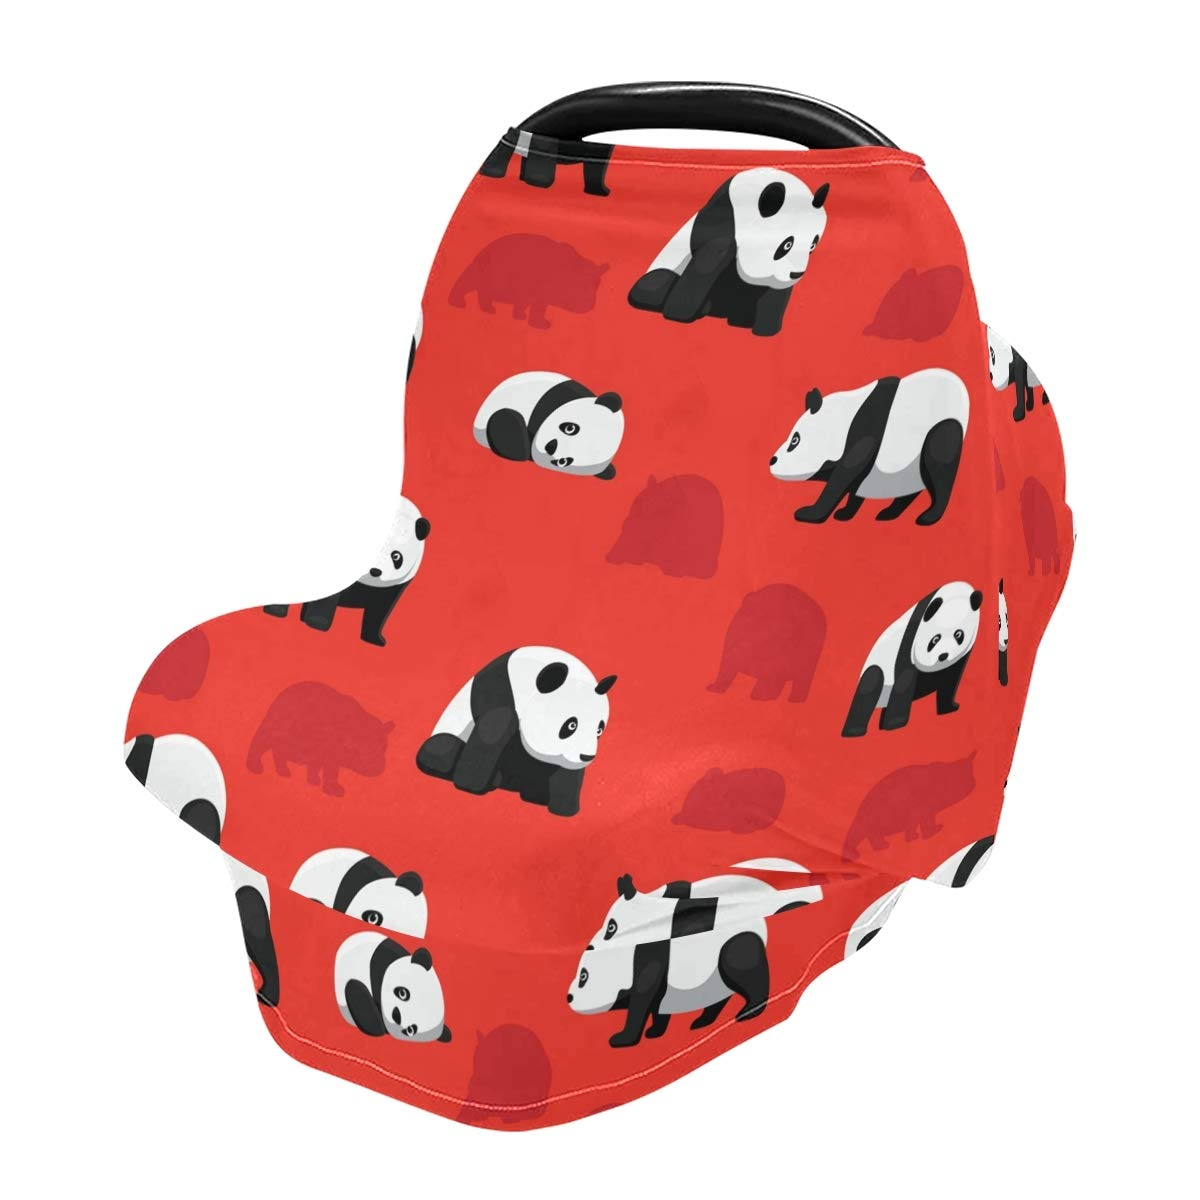 Nursing Cover Breastfeeding Scarf, Bear Panda Car Seat Covers for Babies Infant Stretchy Soft Breathable Multi-Use Cover Ups,Gift for Boys Girls